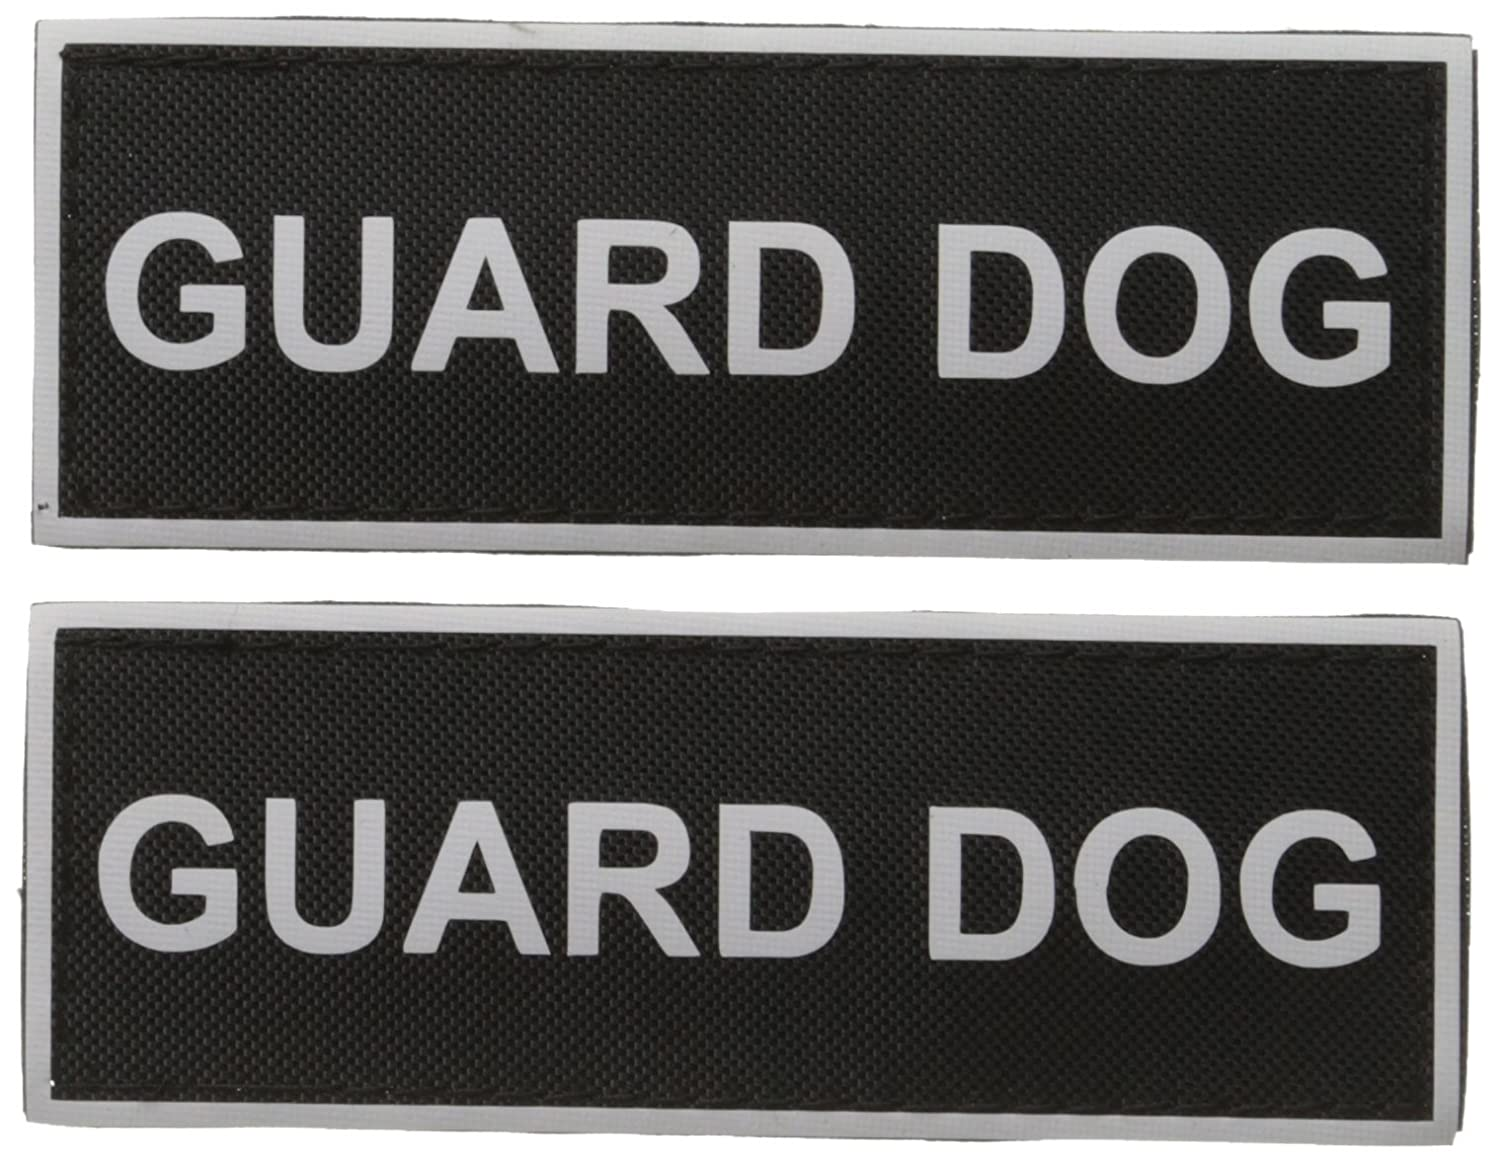 Guard Dog Medium nylon velcro patches by Dean & Tyler.